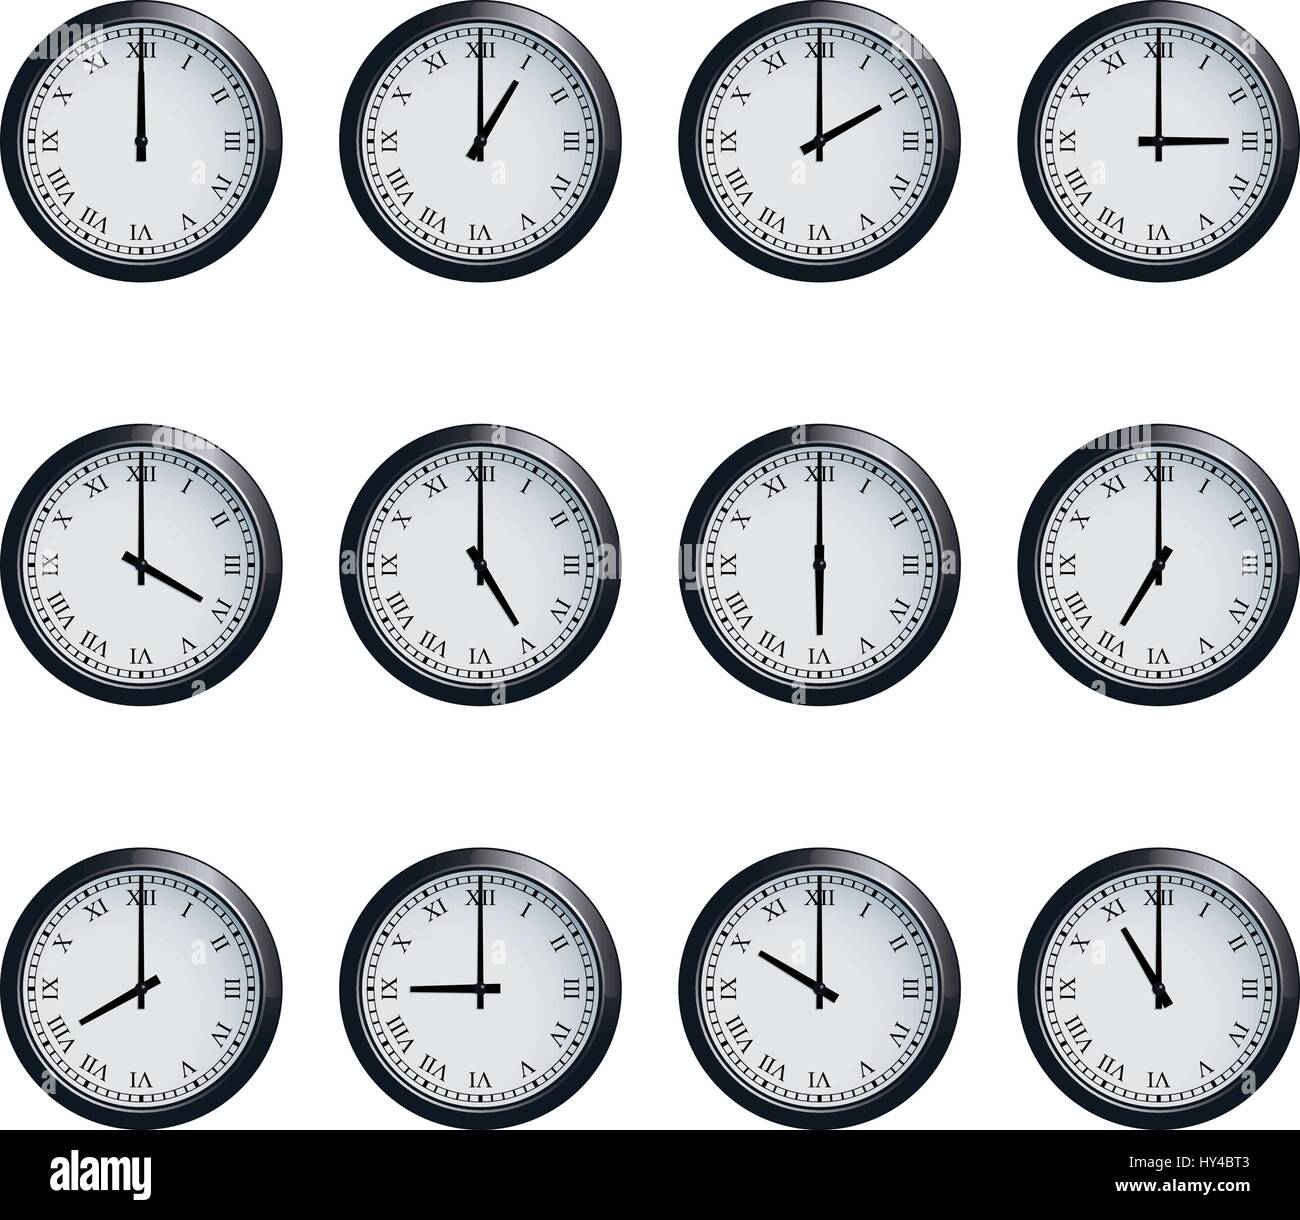 Clock set with Roman numerals, timed at each hour - Stock Image